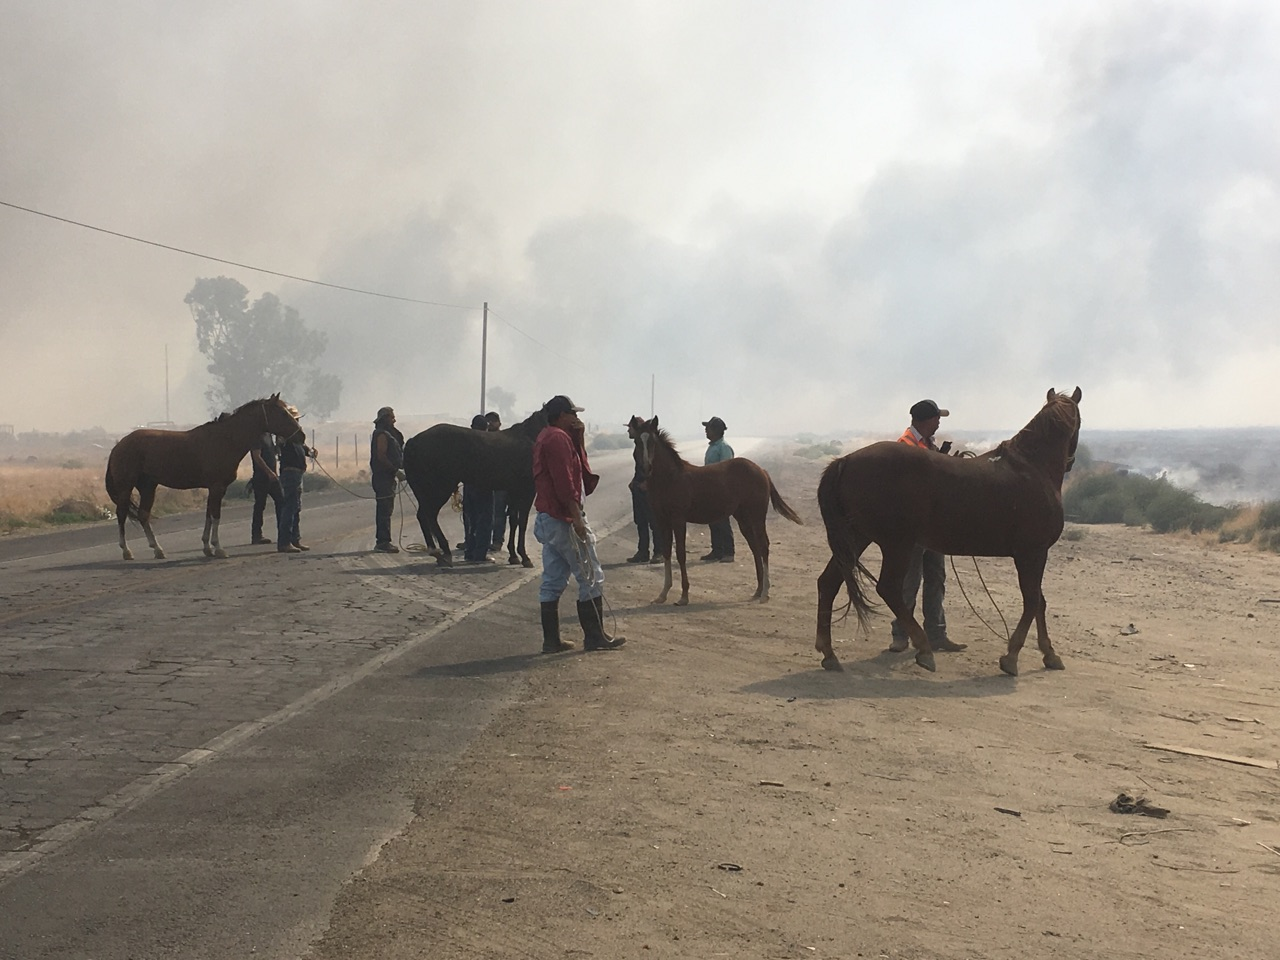 Horses are being evacuated as a grass fire encroaches on their stables in the area of Cottonwood Road in south Bakersfield, Calif., Monday, Oct. 9, 2017. (KBAK/KBFX photo/Alberto Garcia)